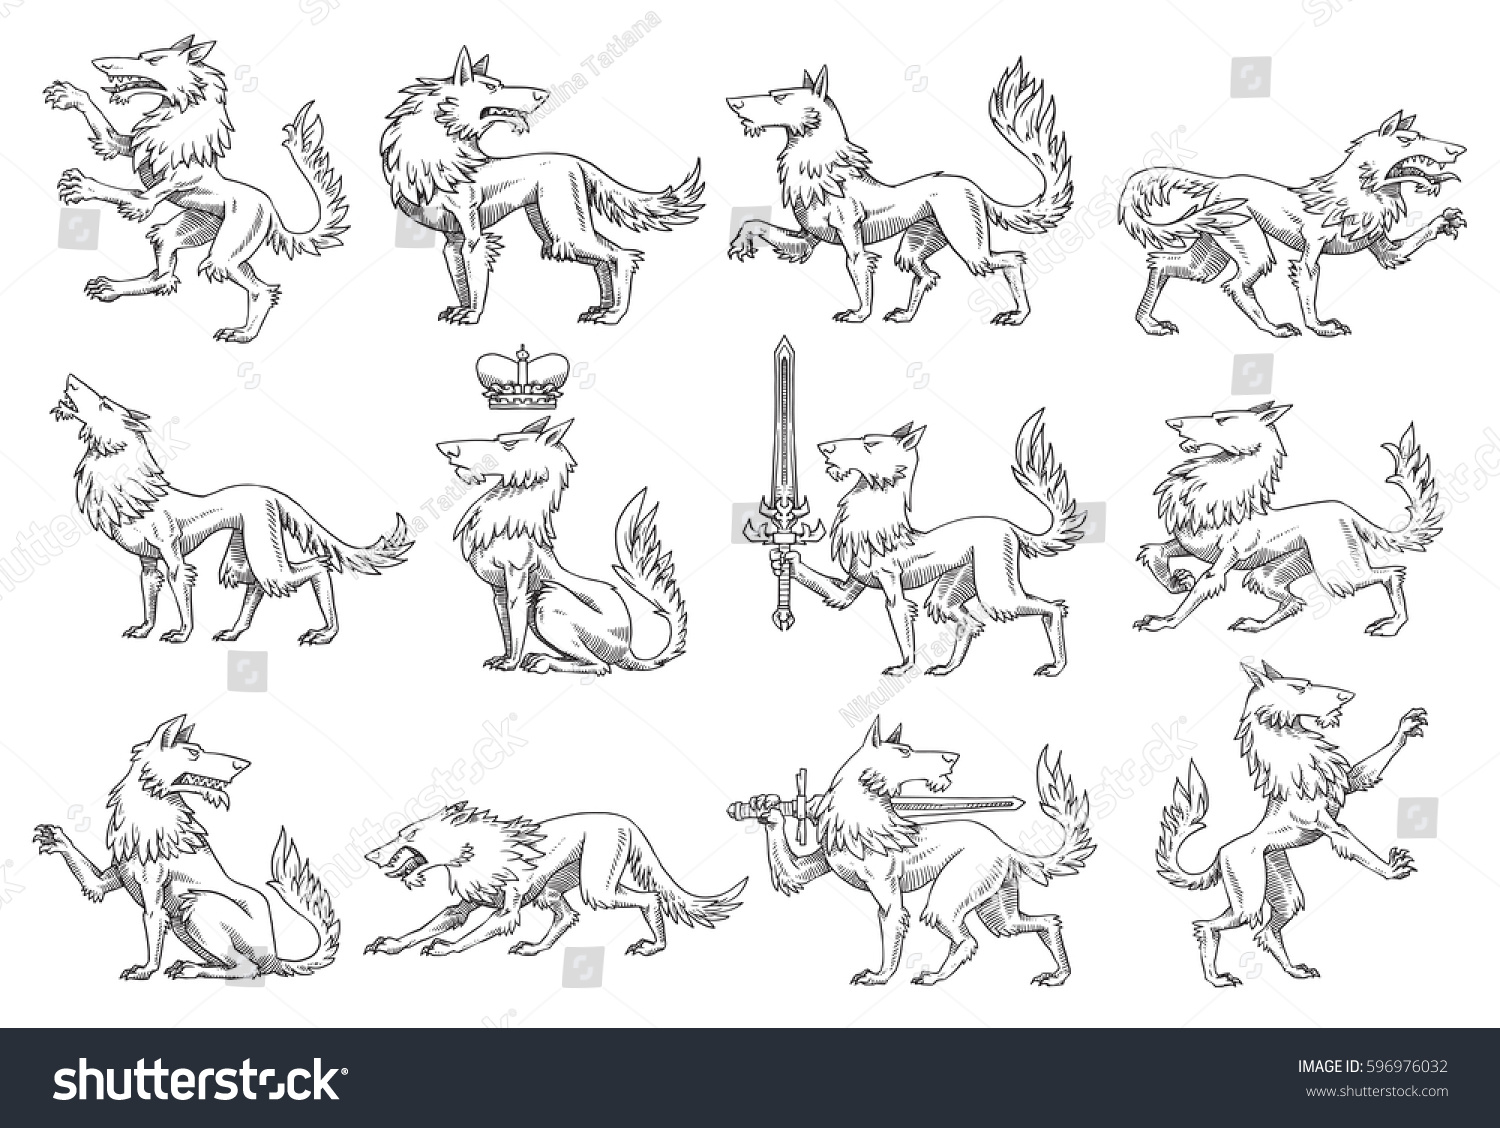 How to breed heraldic dragon - Vector Set Of Twelve Images Of Heraldic Wolves In Different Poses On A White Background